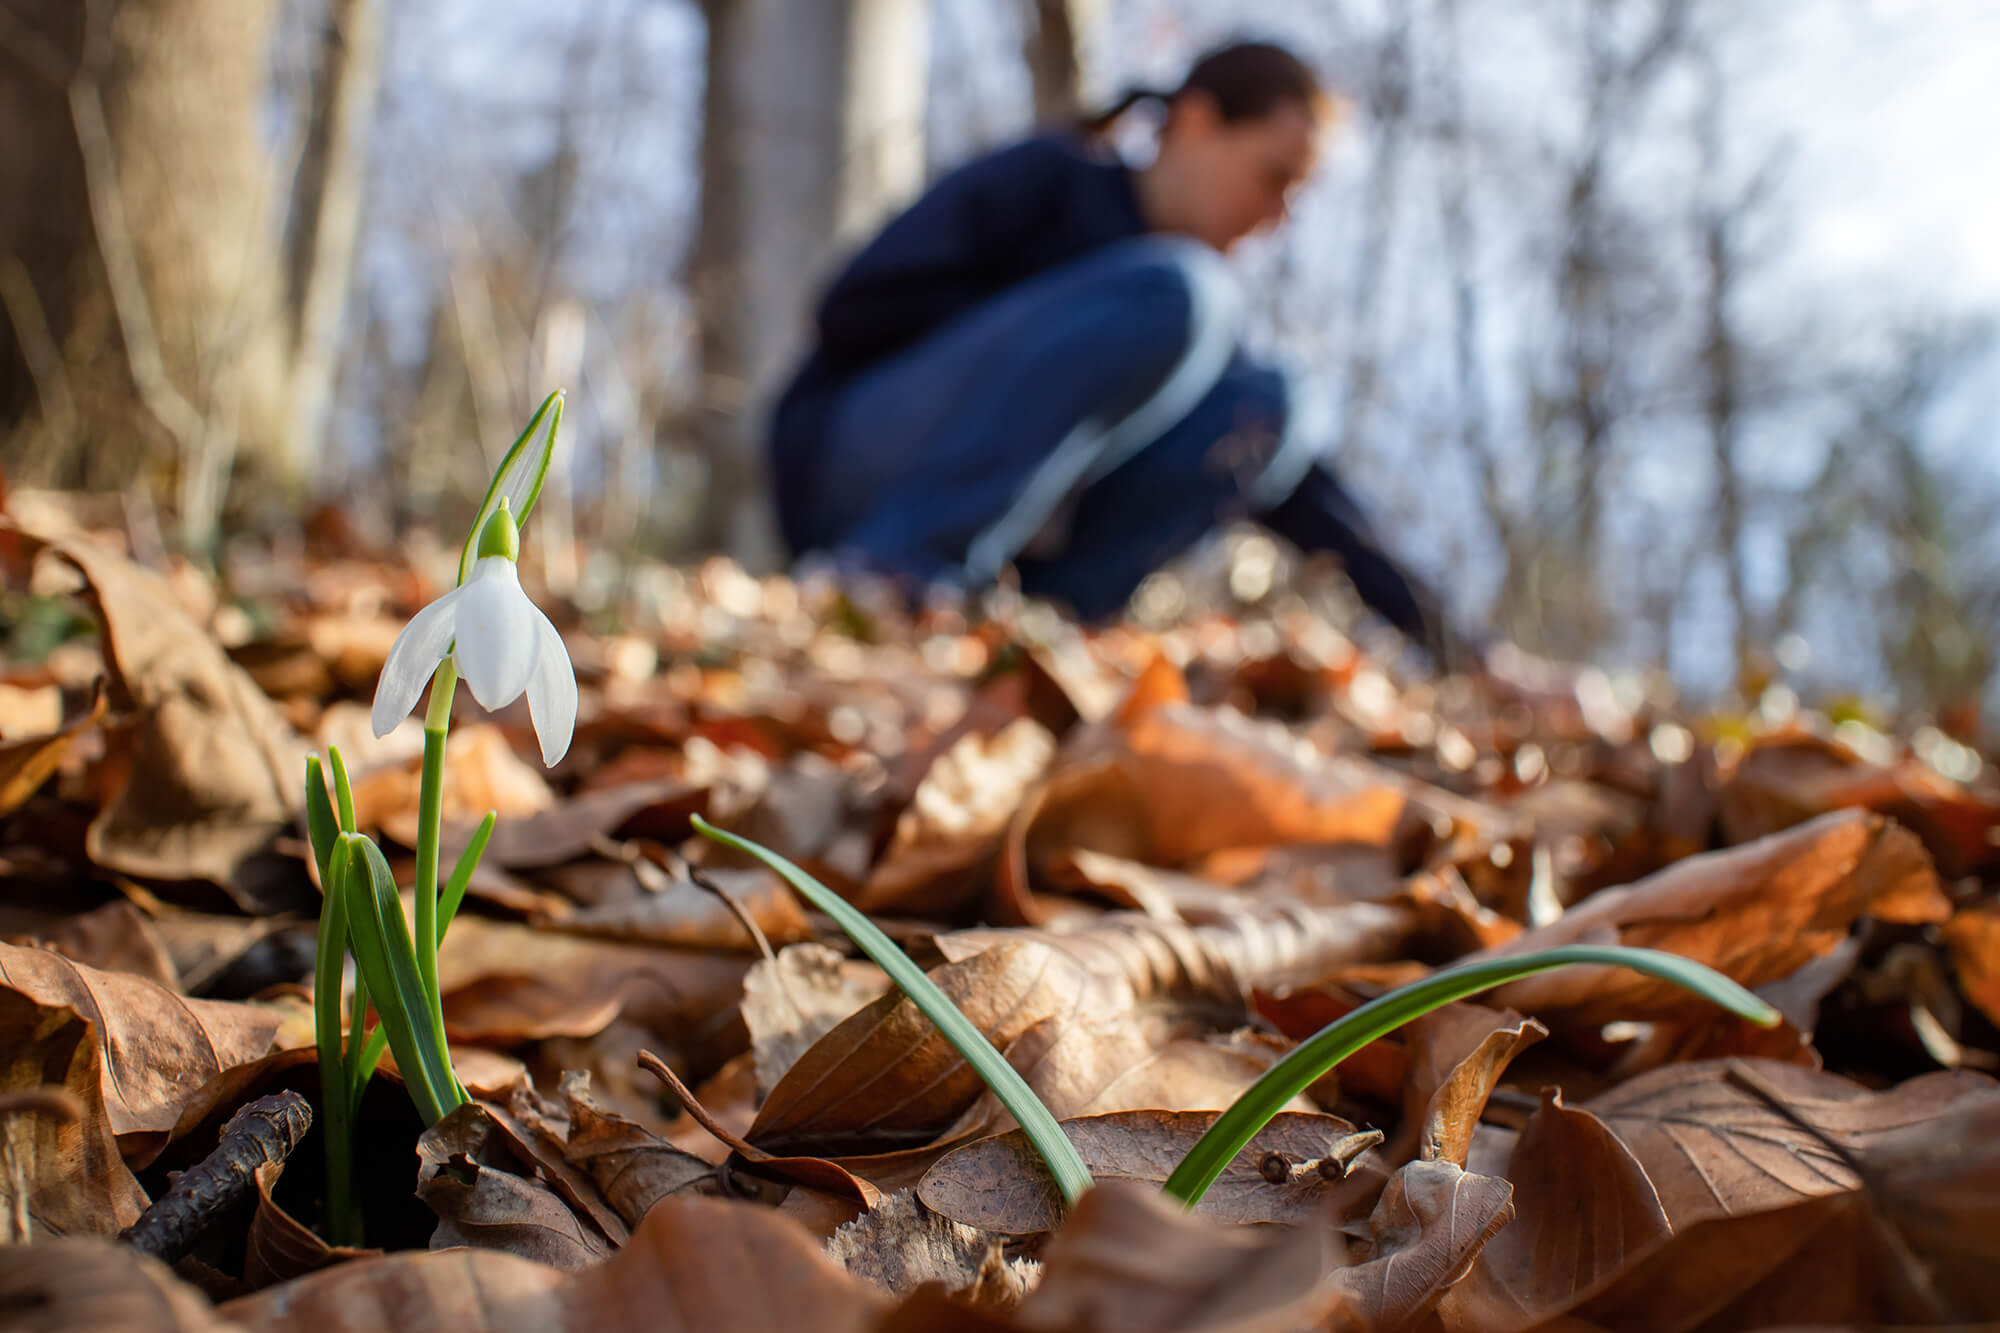 A snowdrop surrounded by leaves